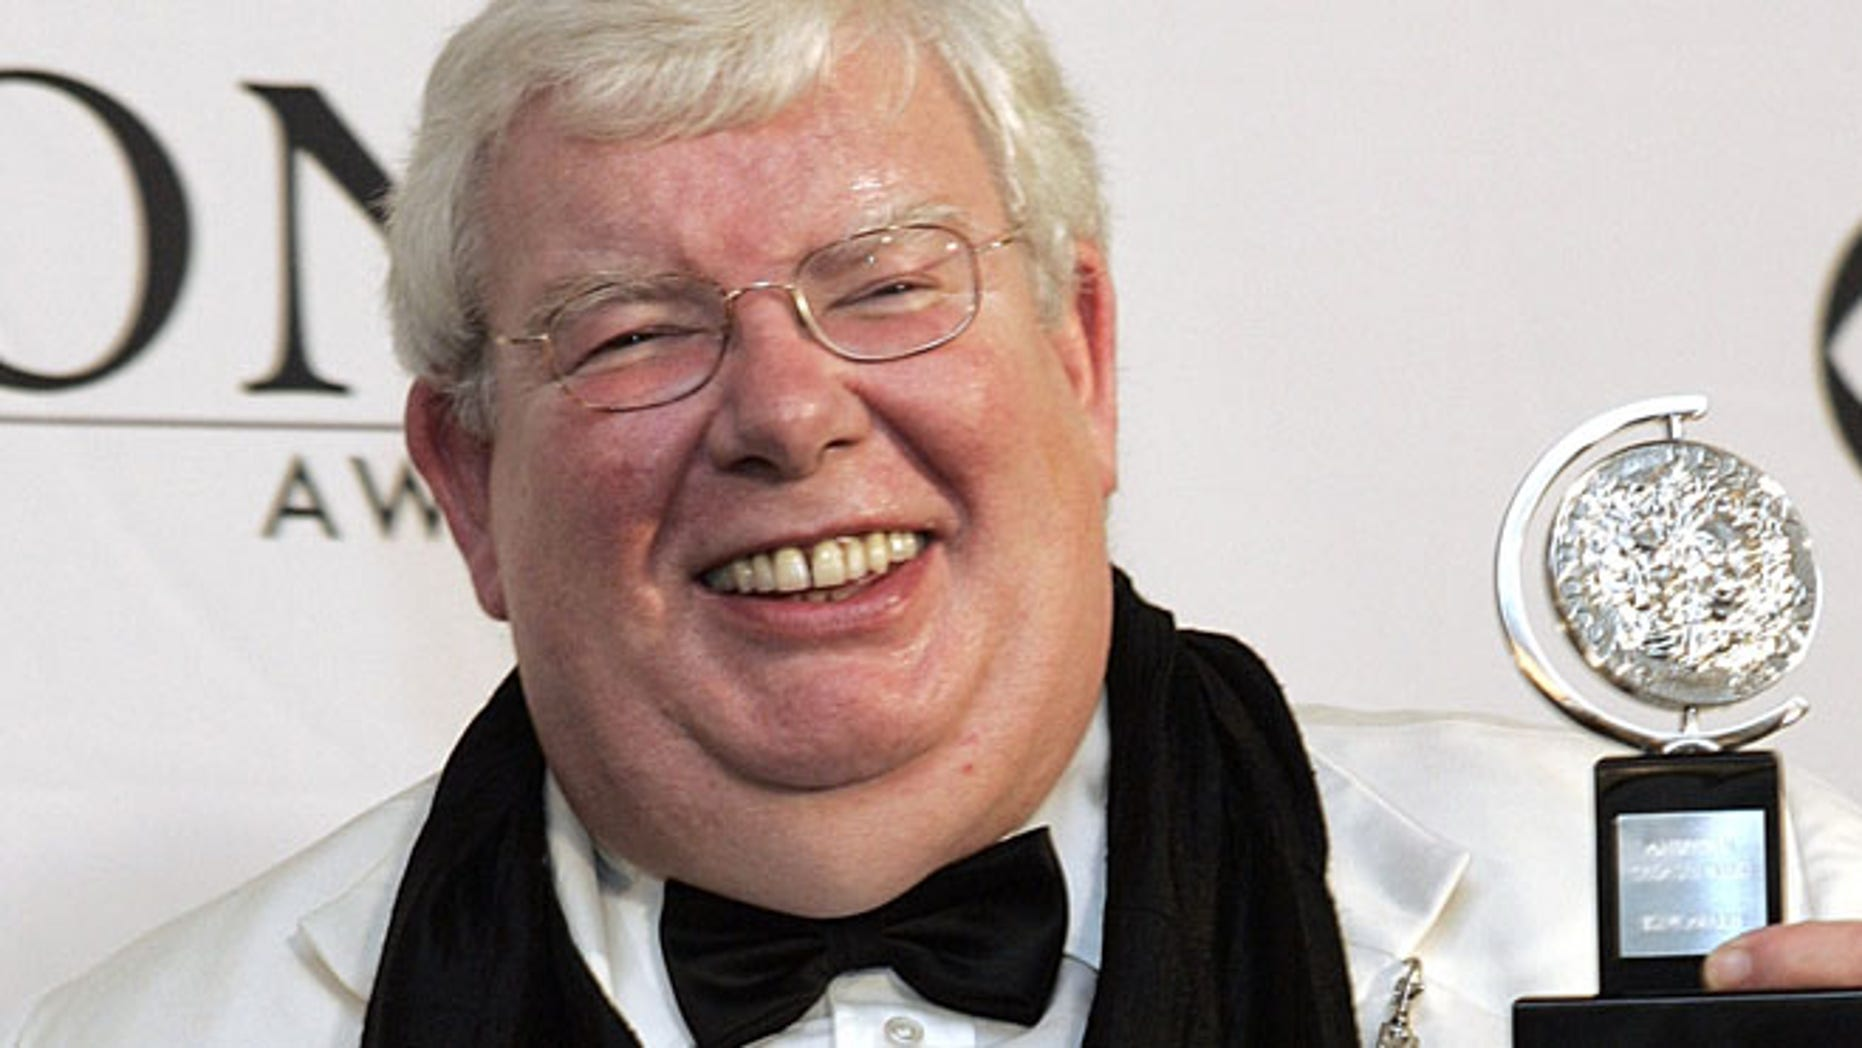 FILE 2006: Richard Griffiths at the 60th Annual Tony Awards in New York.